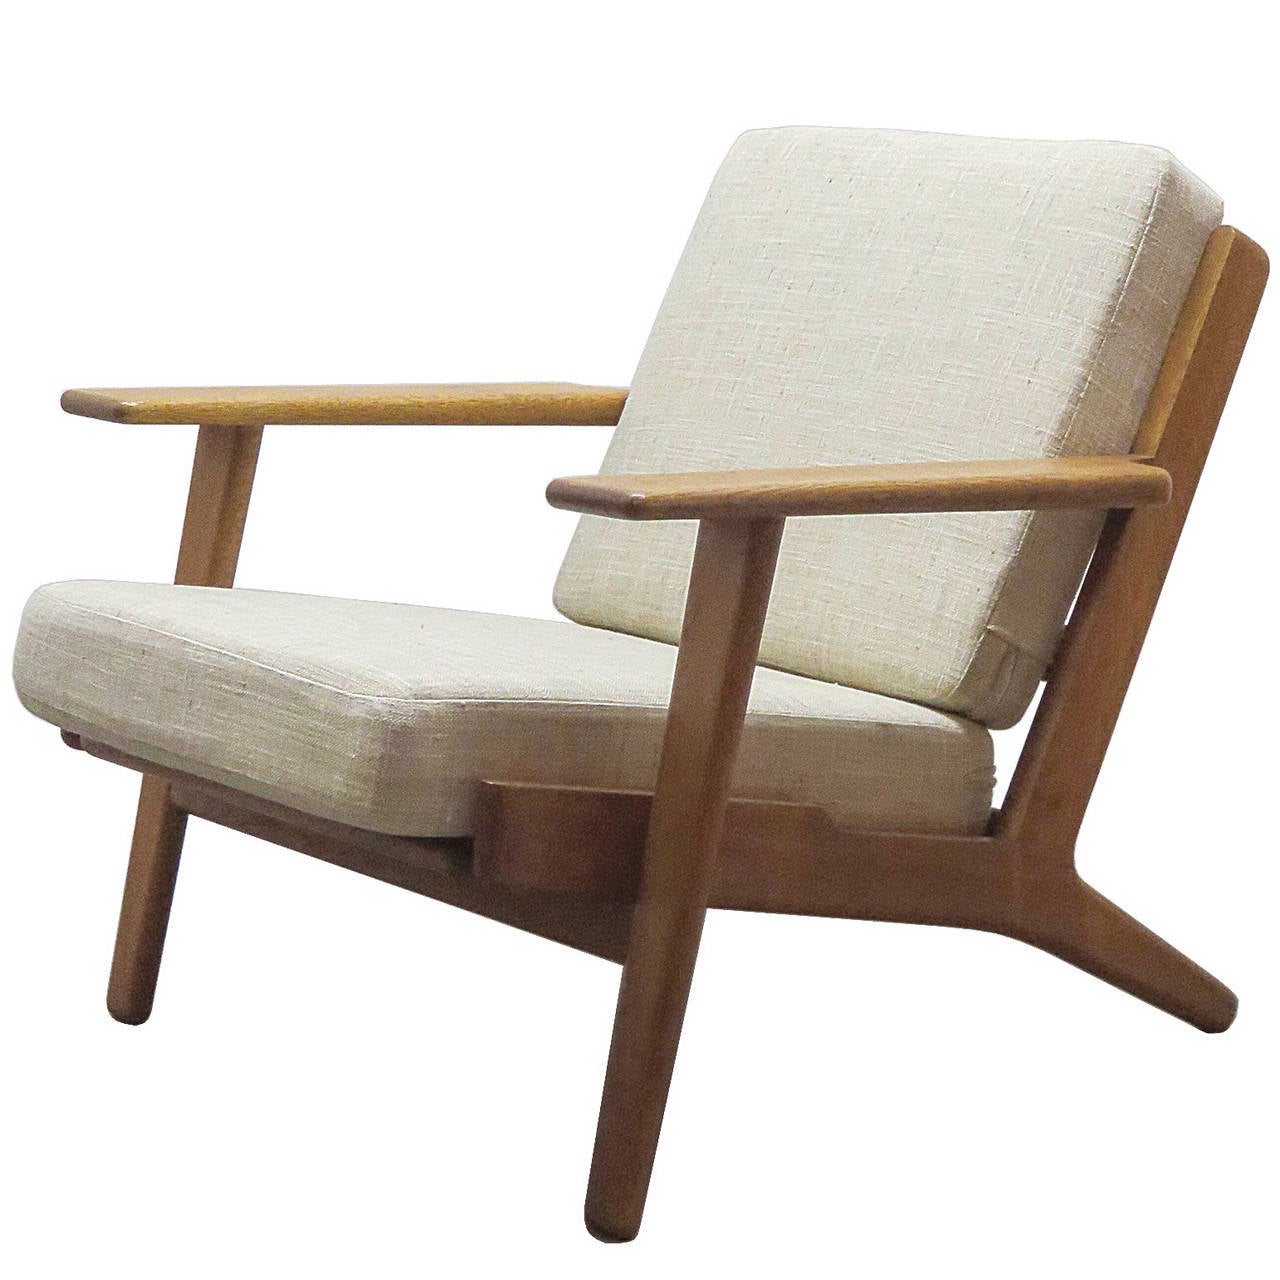 Hans j wegner ge 290 lounge chair at 1stdibs for Furniture chairs